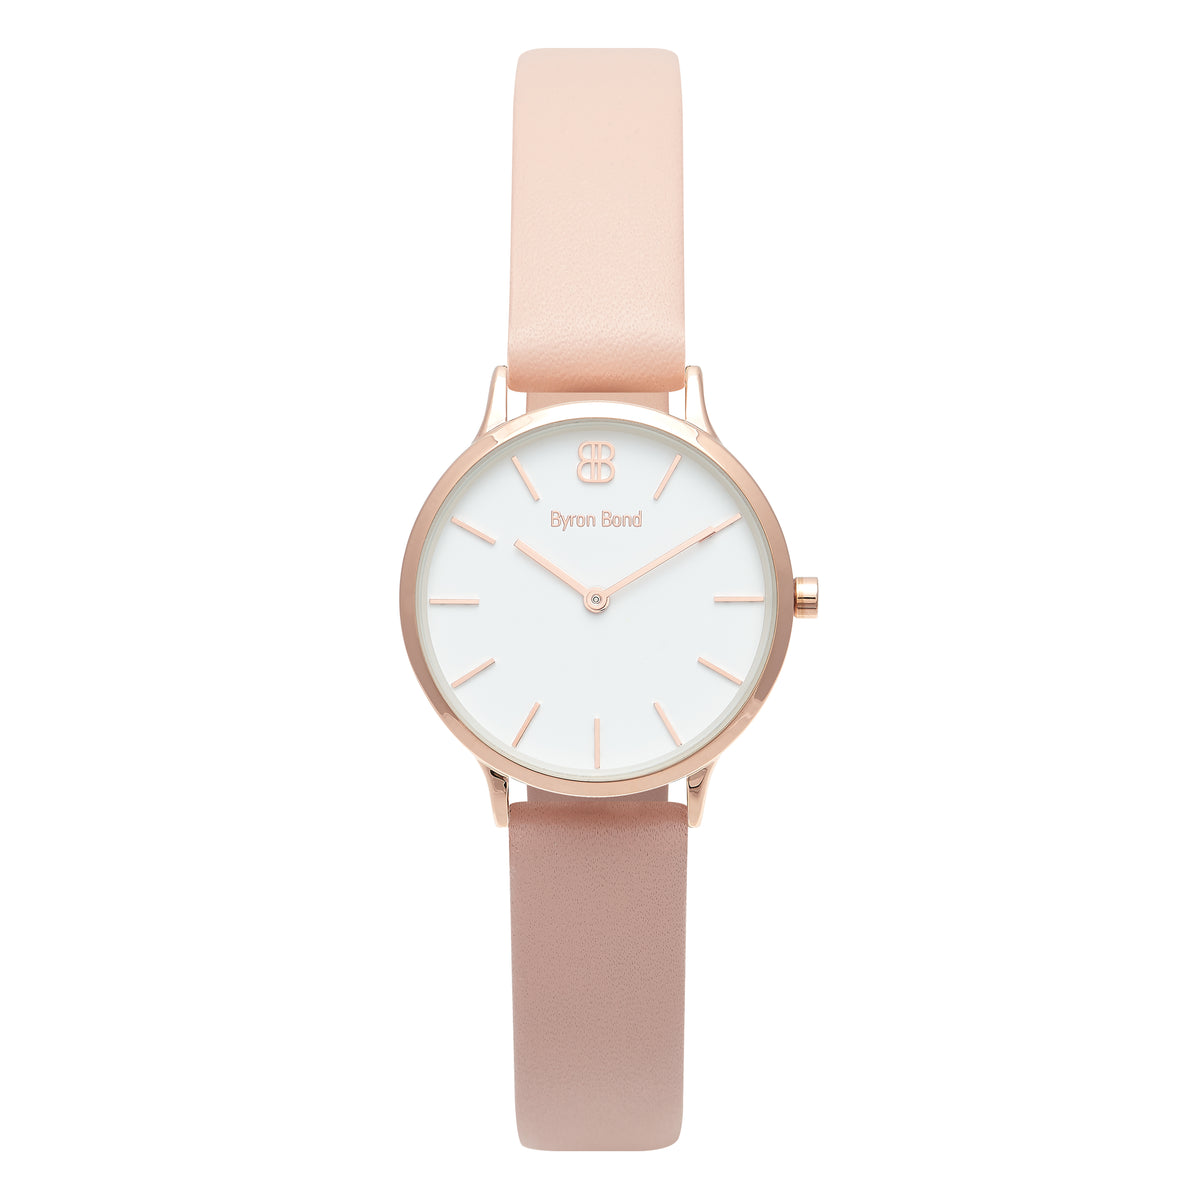 b41531716 Women's Small Rose Gold Watch White Dial Pink Leather Strap - Mark 5 -  Victoria -